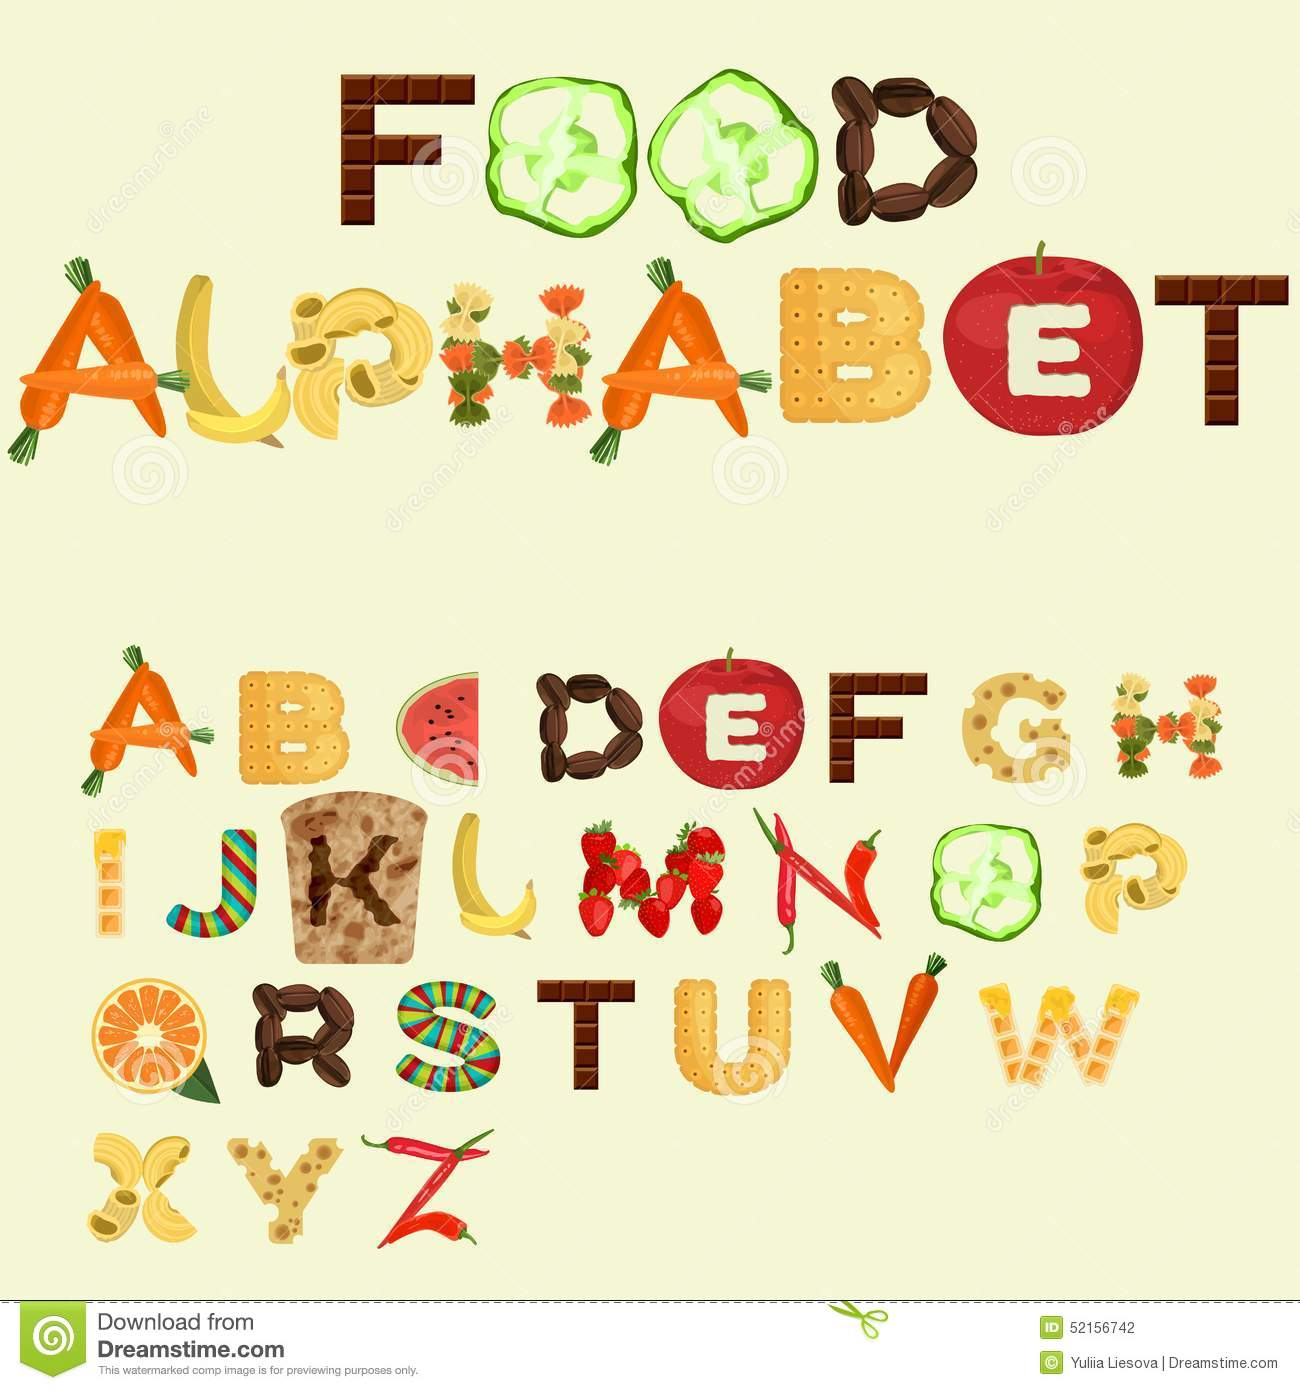 Kitchen Poster Food As Alphabet With Food Name: Alphabet Made Of Different Food, Flat Design Stock Vector